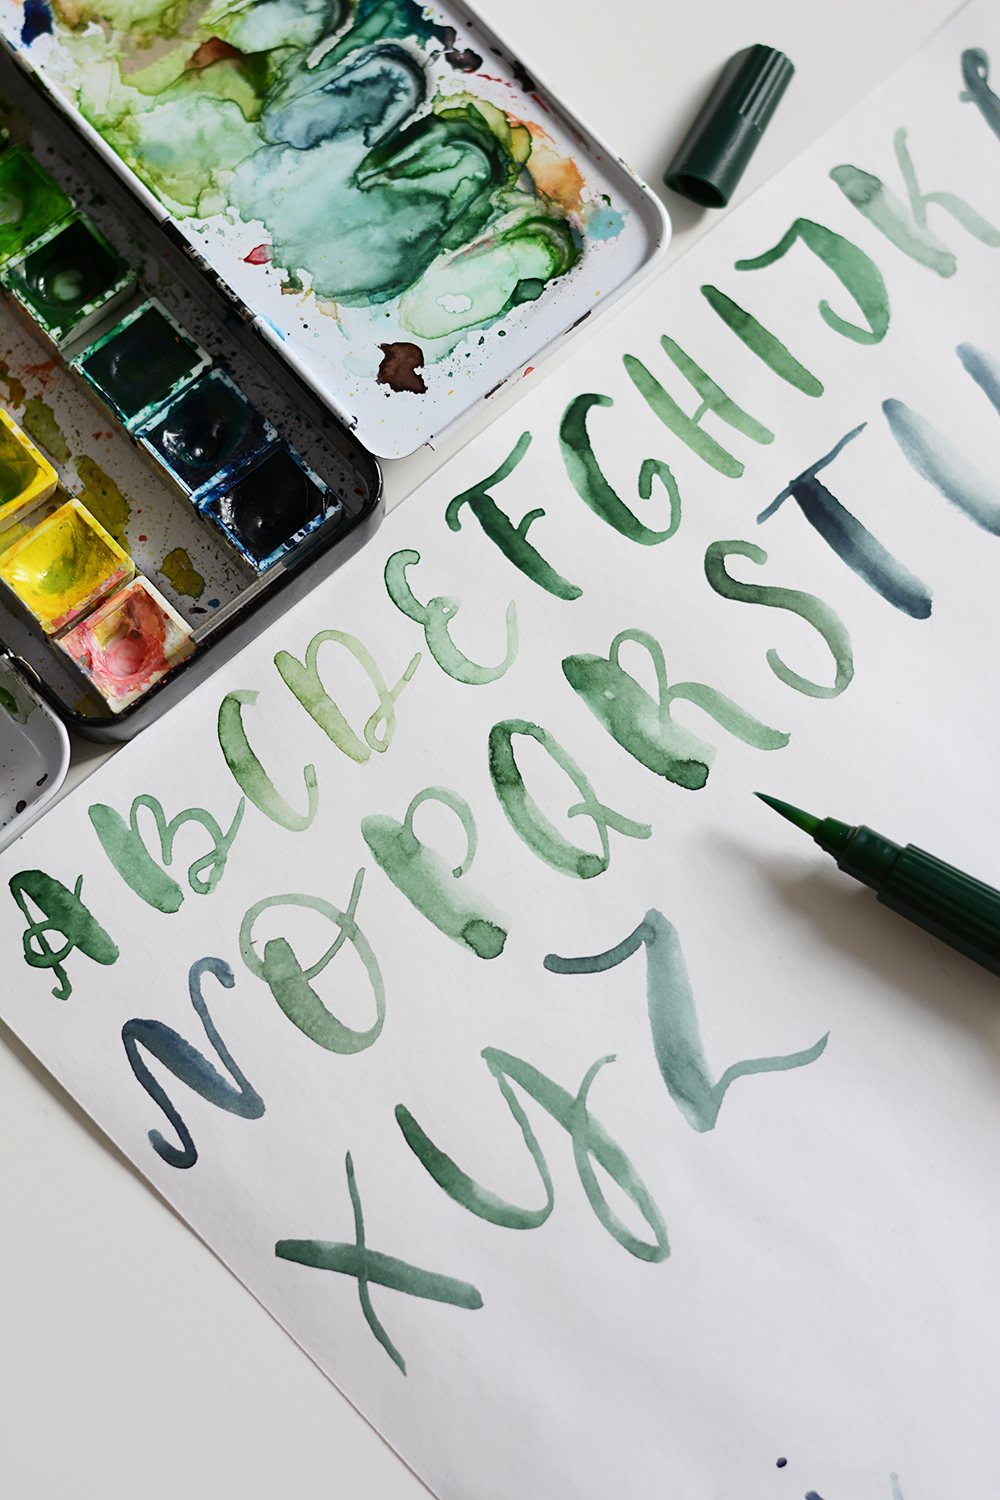 Lettering-Alphabet | we love handmade